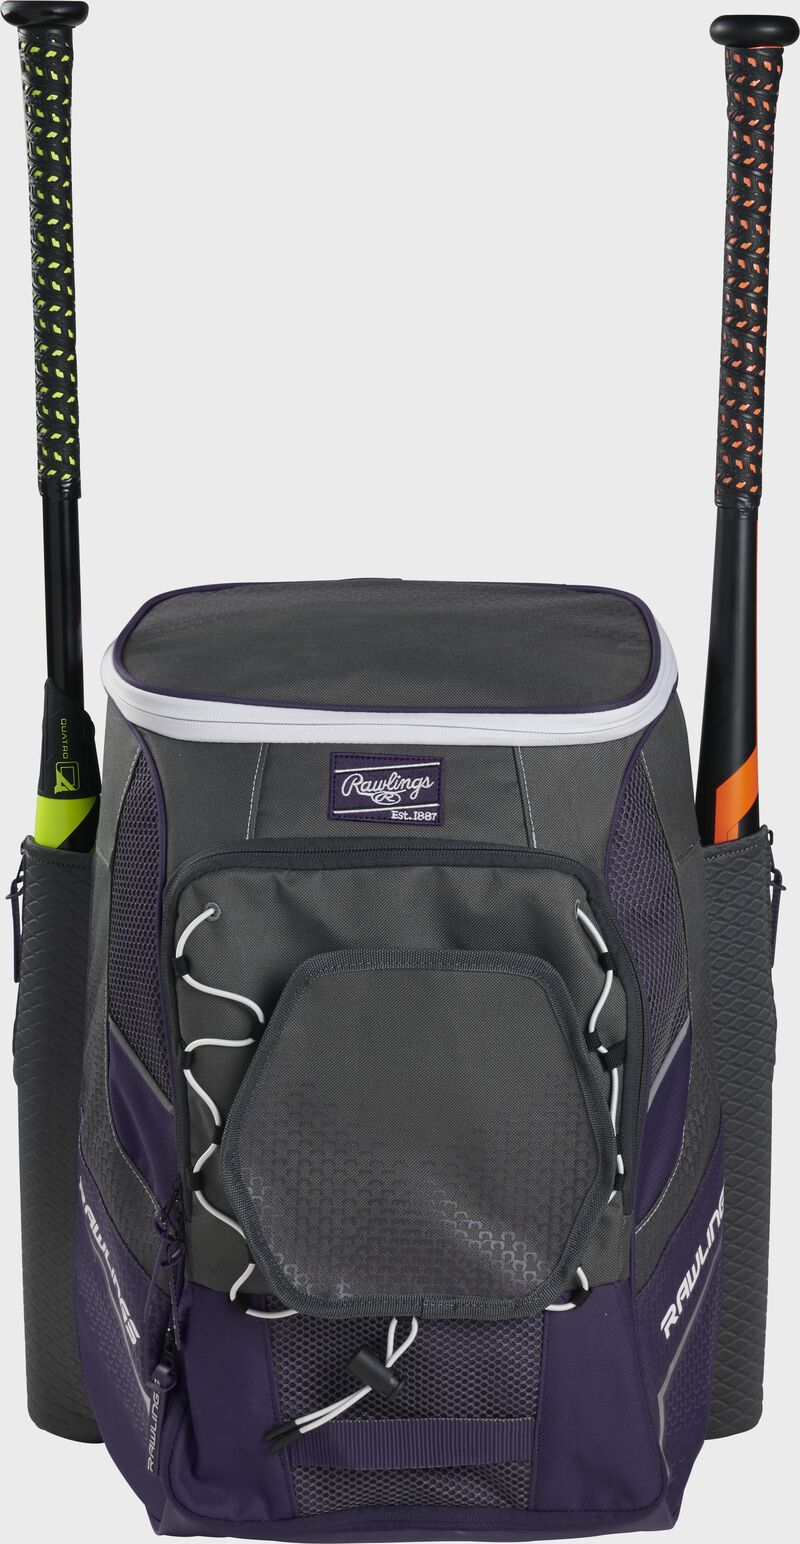 Front of a purple Rawlings Impulse bag with a purple Rawlings patch and two bats in the sides - SKU: IMPLSE-PU